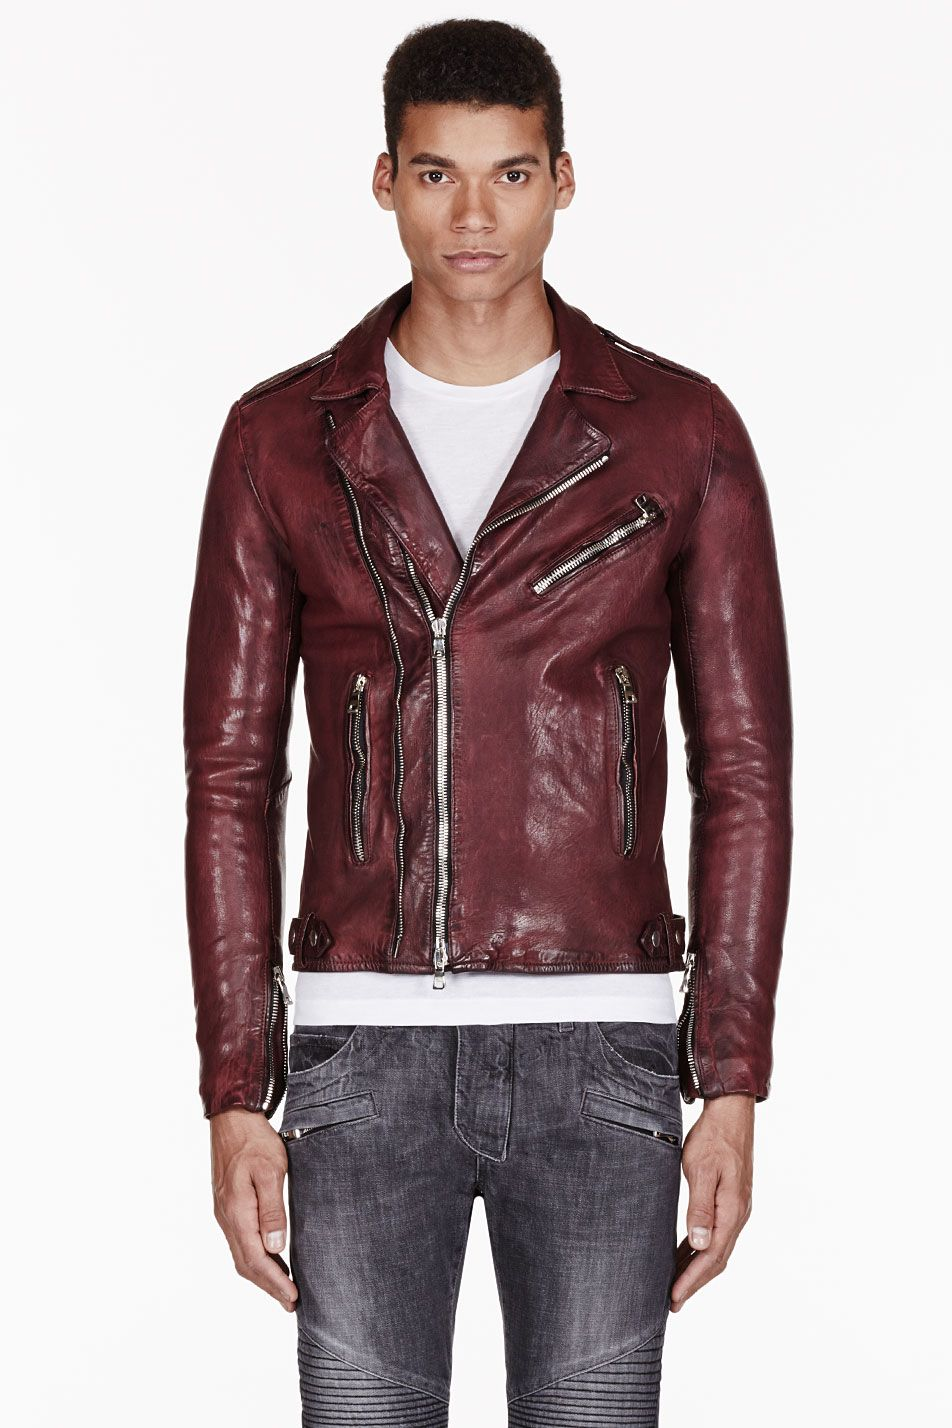 ee5c8b3c3627 Balmain Burgundy Leather Biker Jacket in Red for Men (burgundy ...